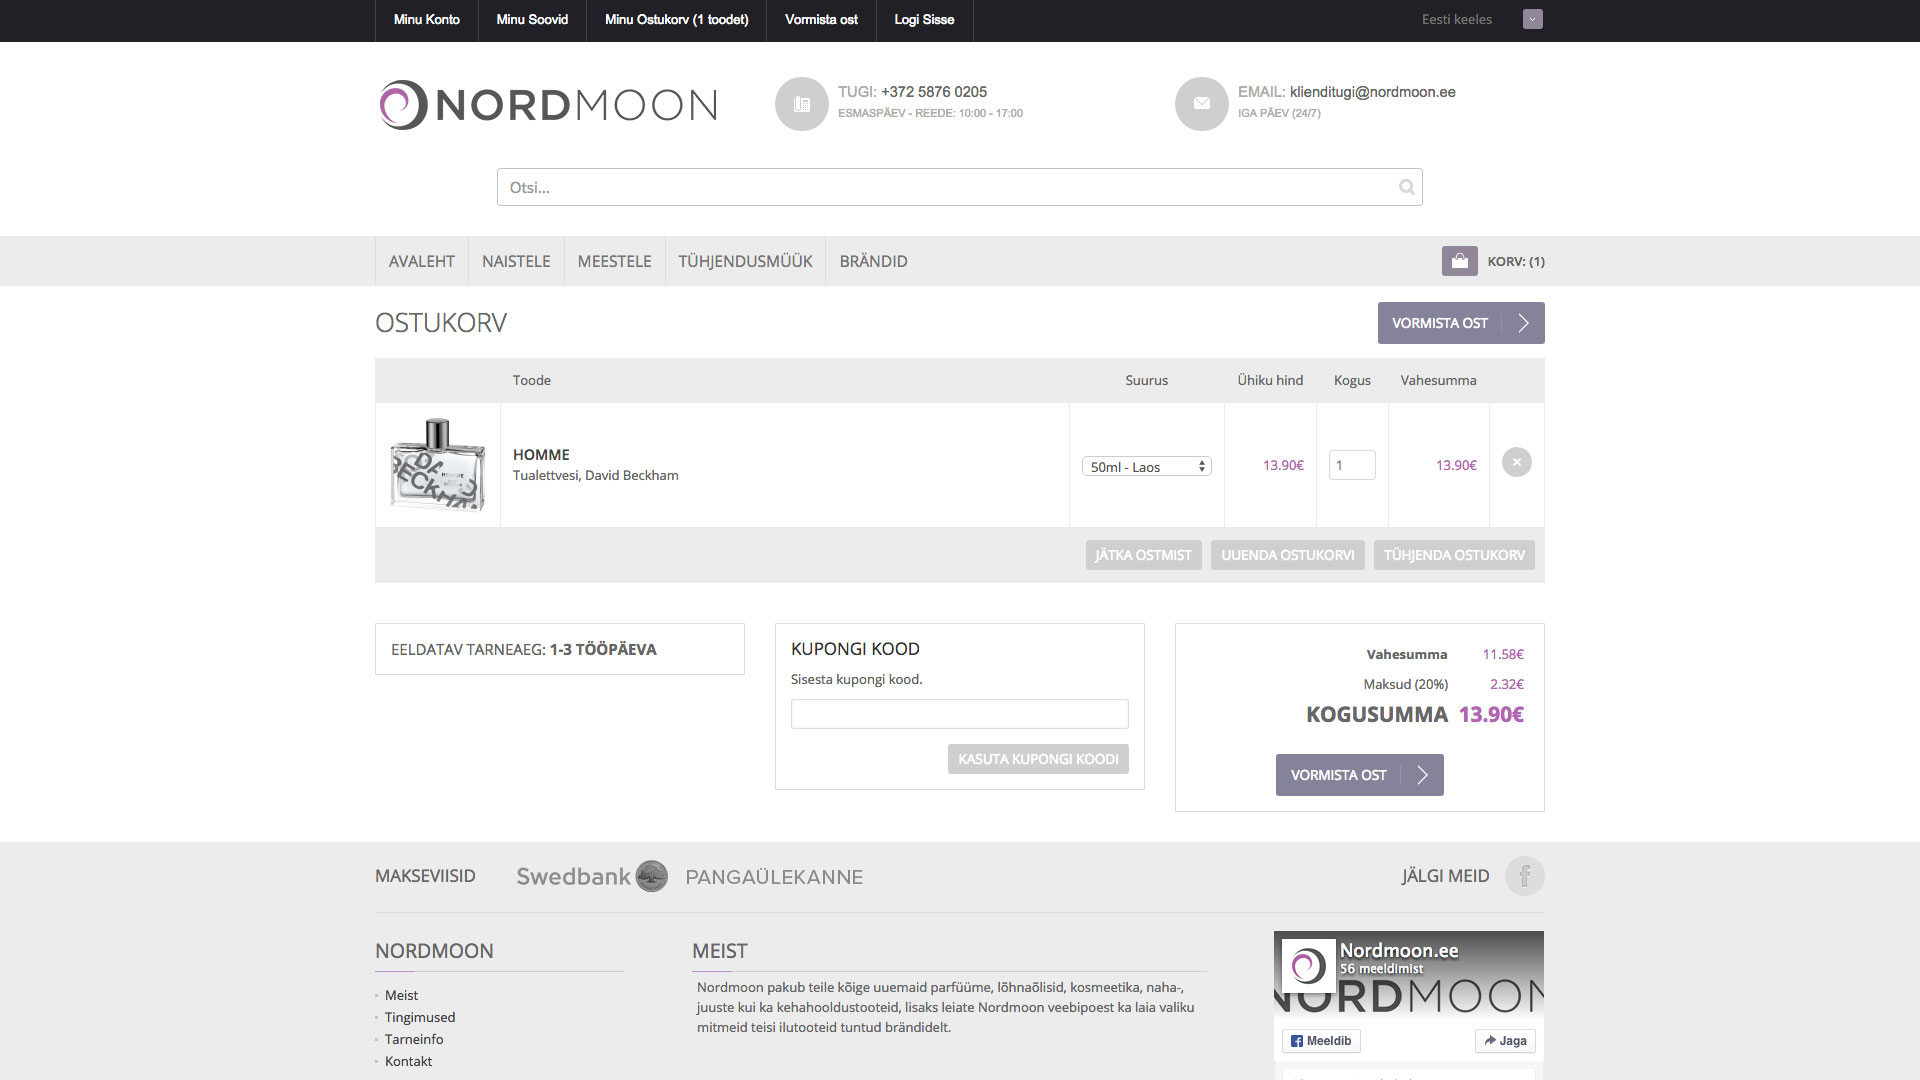 Portfolio image of Nordmoon website